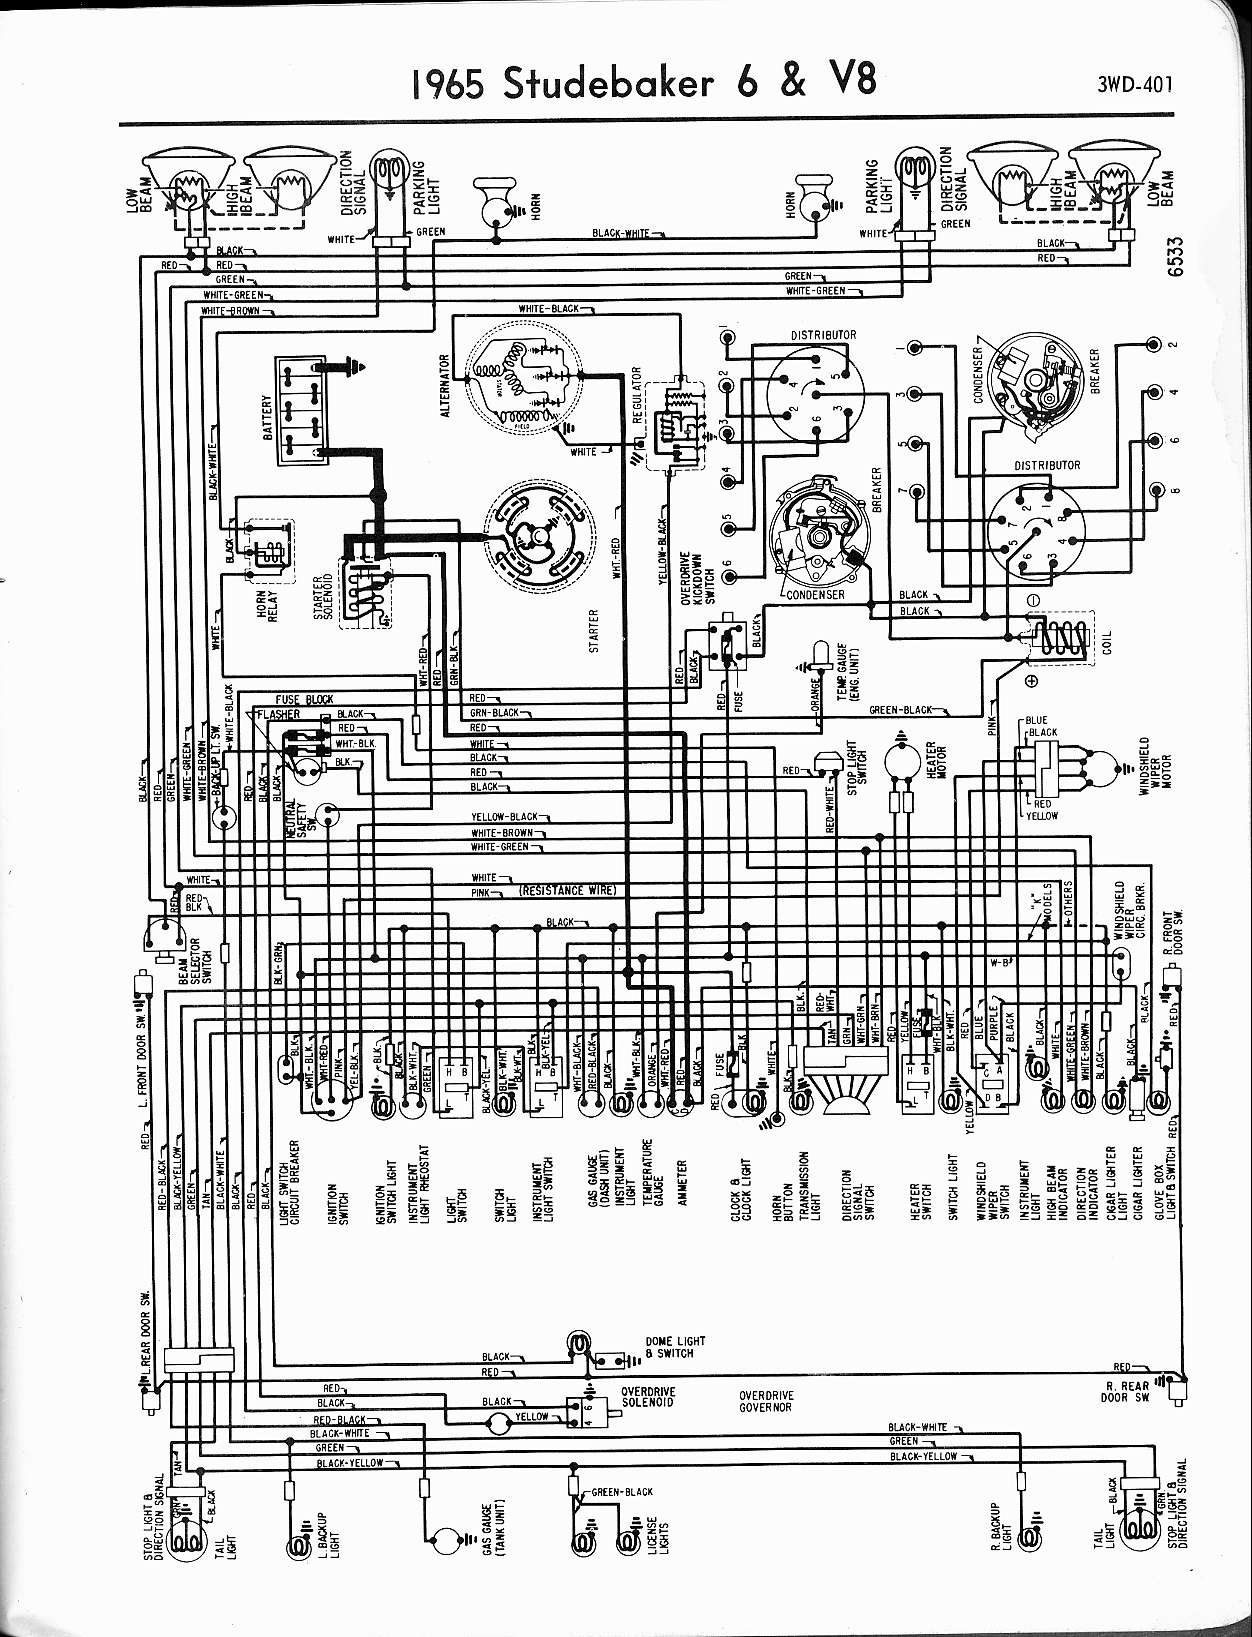 studebaker wiring diagrams the old car manual project more stude wiring diagrams